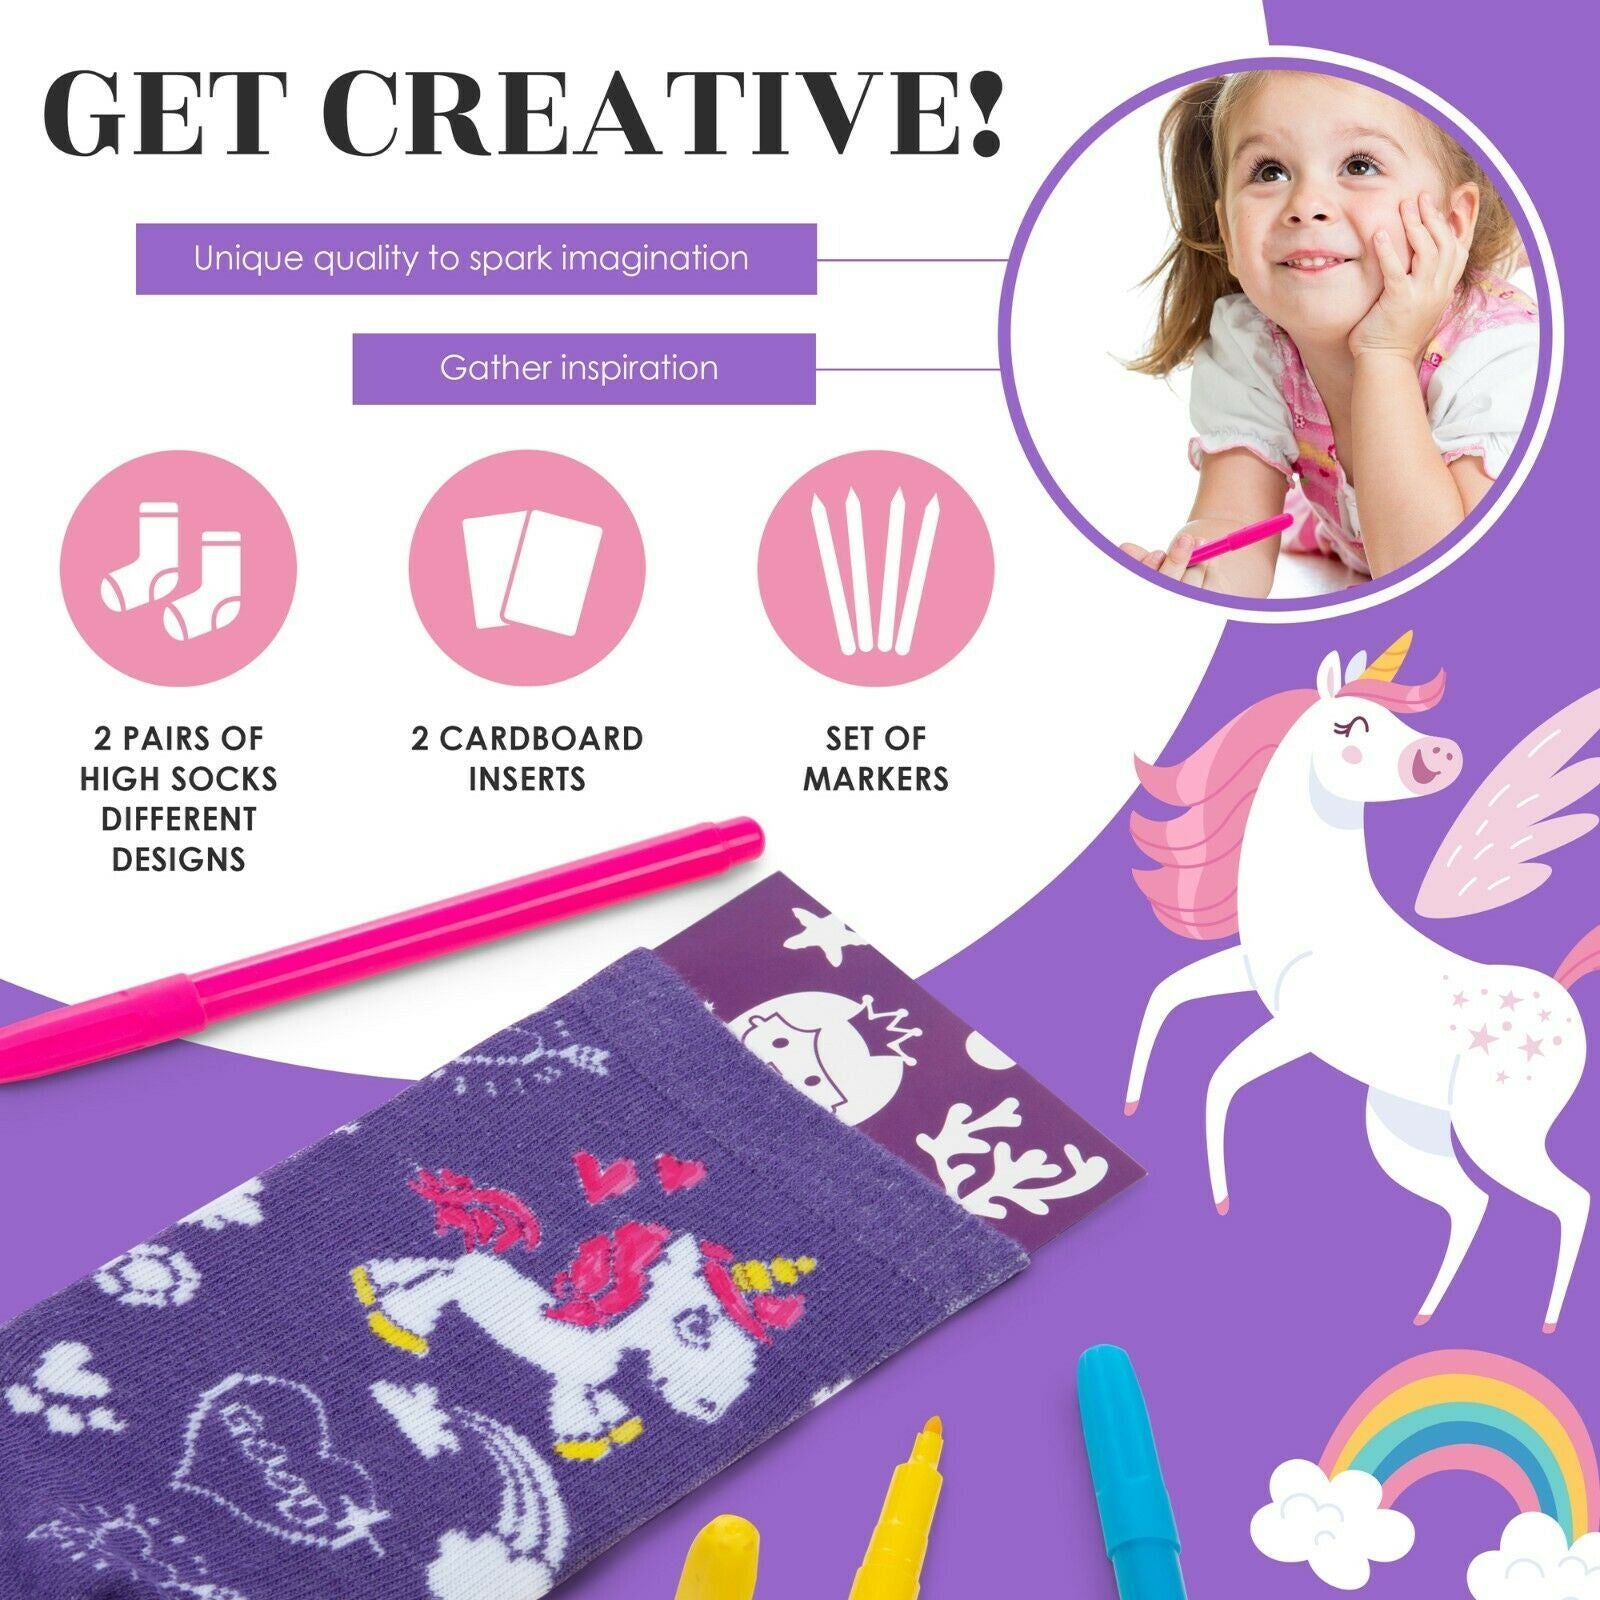 Color your own Unicorn Mermaid doodle socks are great craft kits for kids ages 3-4-5-6 years olds. Quality gift set activity for birthday, kids craft projects as Christmas stocking stuffers